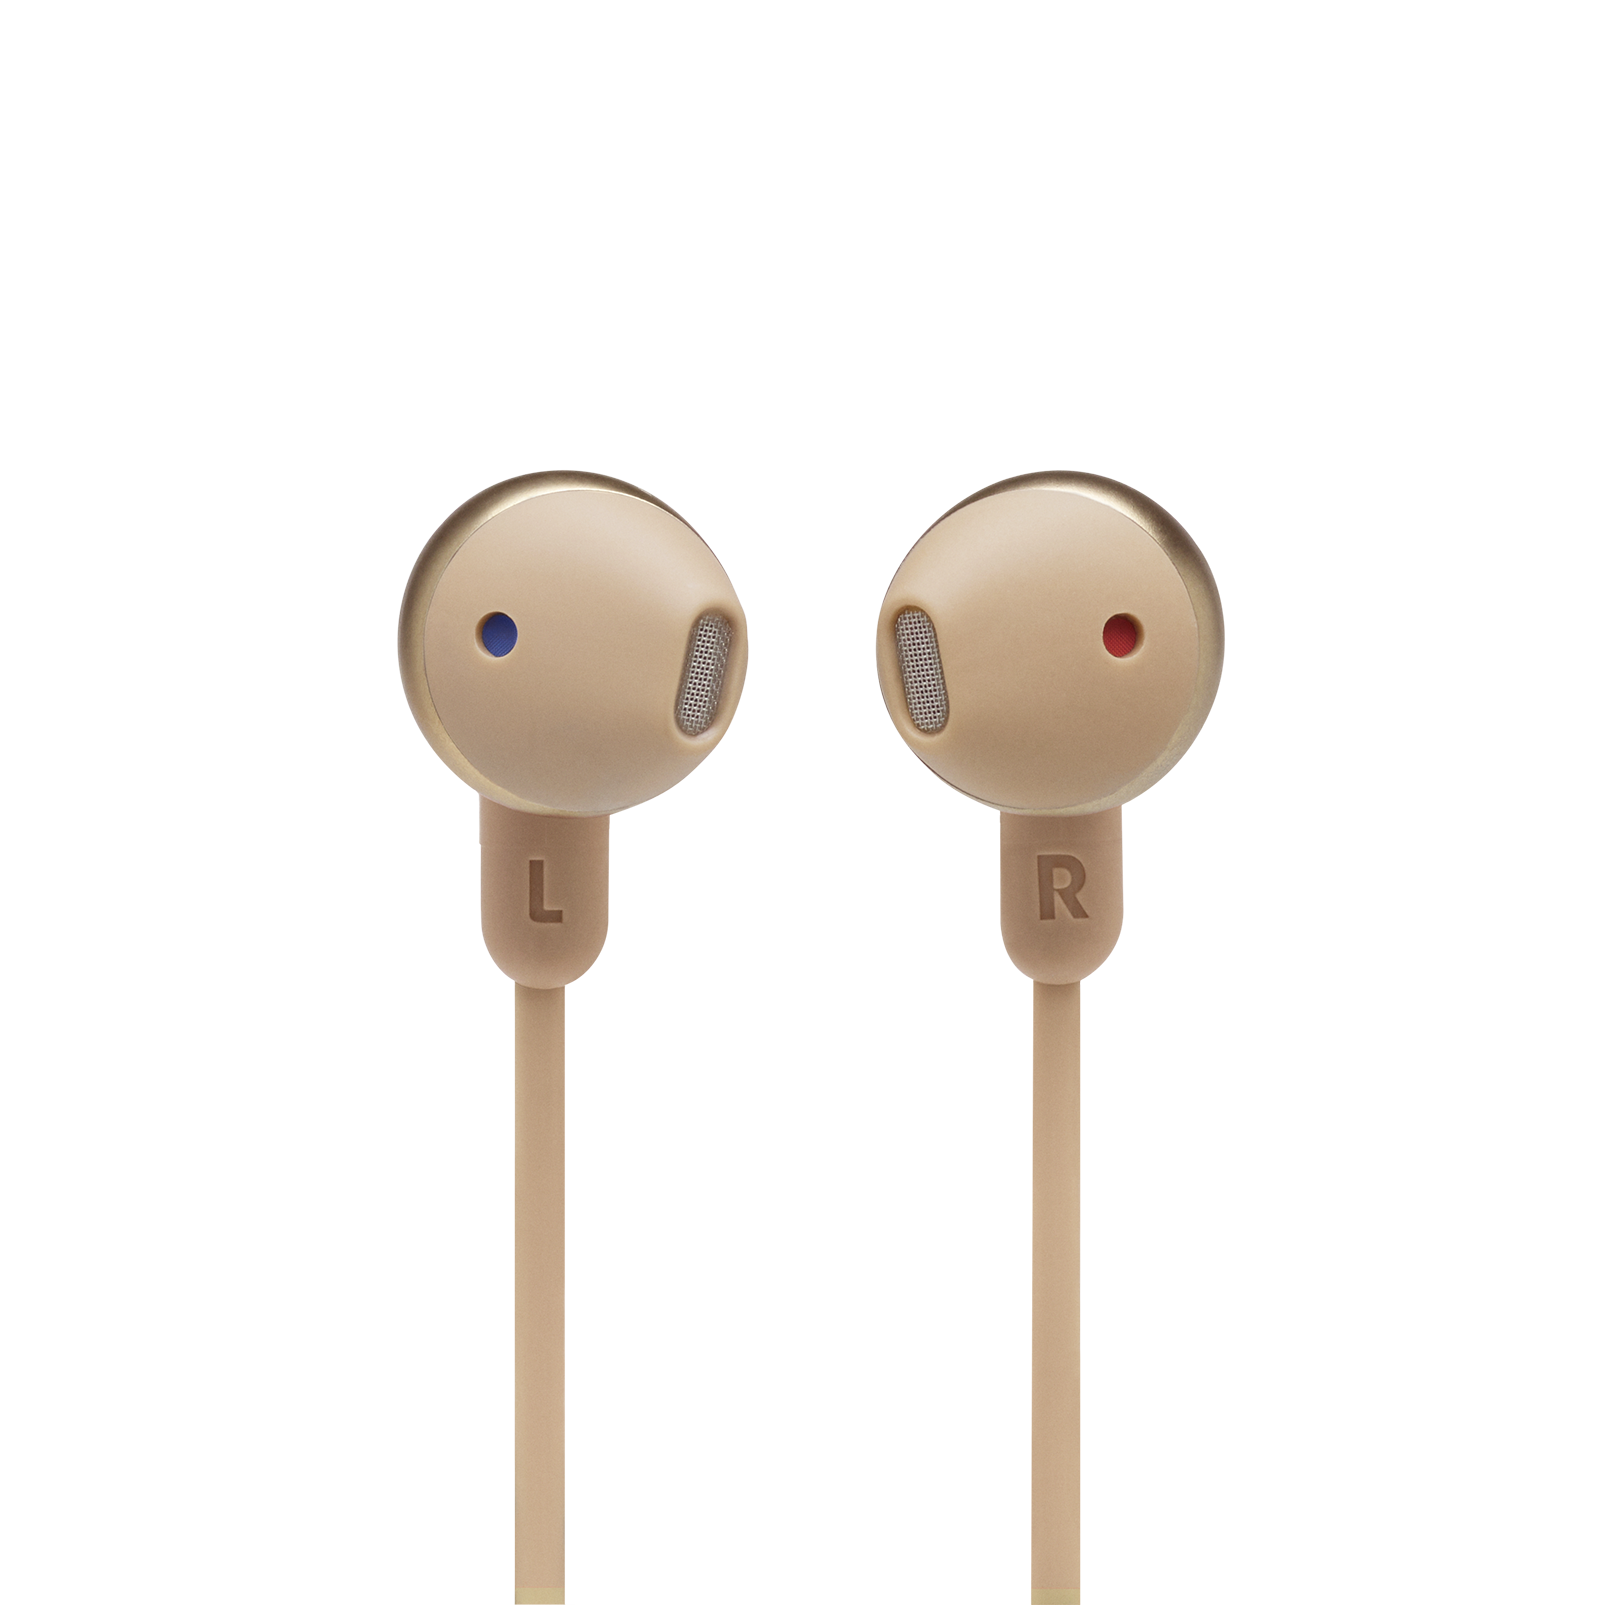 JBL TUNE 215BT - Champagne Gold - Wireless Earbud headphones - Detailshot 1